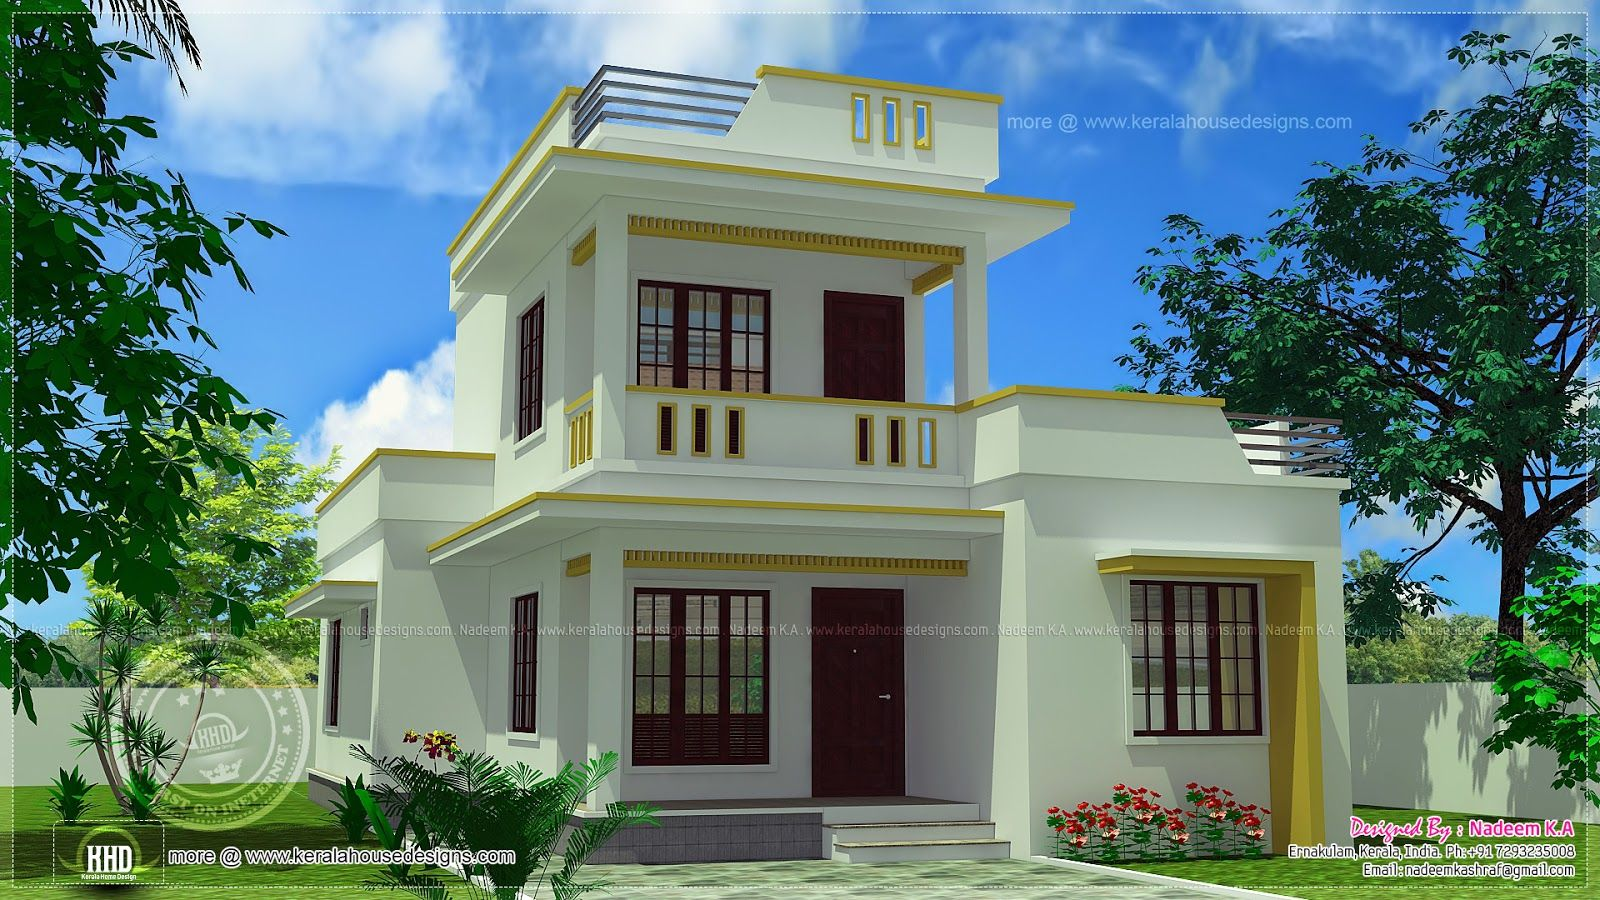 Roof home design feet kerala plans simple modern house Simple house designs indian style